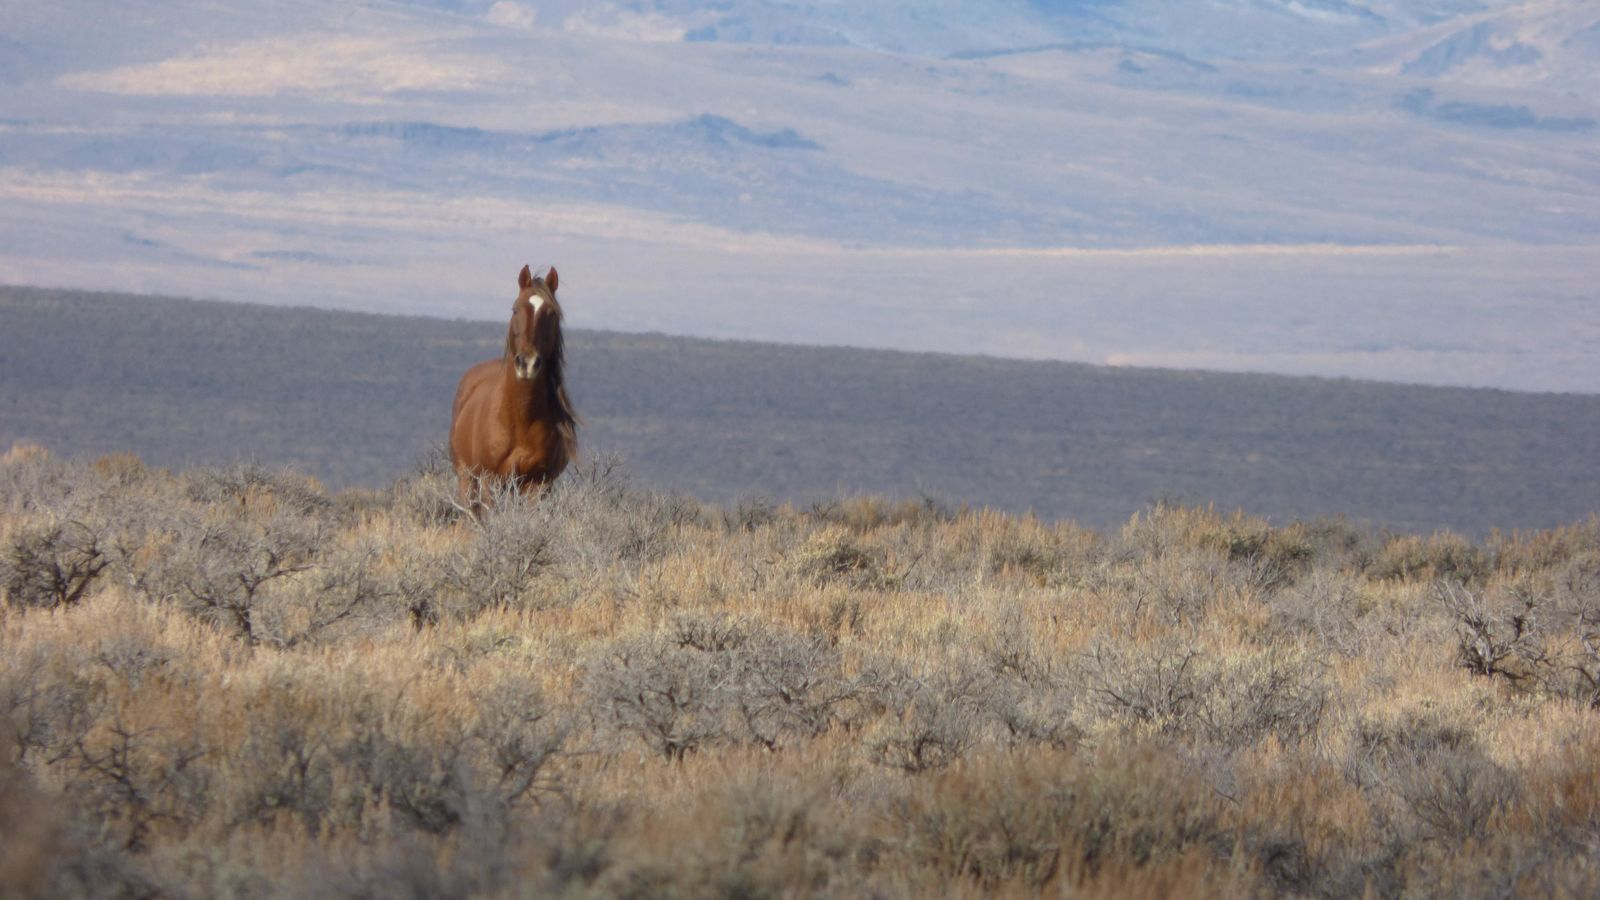 In early November of 2015, the BLM aimed to gather wild horses from the Beaty Butte Management Area. The remote southern Oregon location is 65 miles east of Lakeview and adjacent to the Hart Mountain National Wildlife Refuge.   The Beaty Butte herd is estimated to have 1,200 wild horses, six times the designated management level. The goal of this gather is to maintain the natural ecological balance of the range.   On Day 4 of the gather, Nov. 7, 149 horses were gathered and 27 were transported to the BLM holding facility.  Photos: Larisa Bogardus, BLM